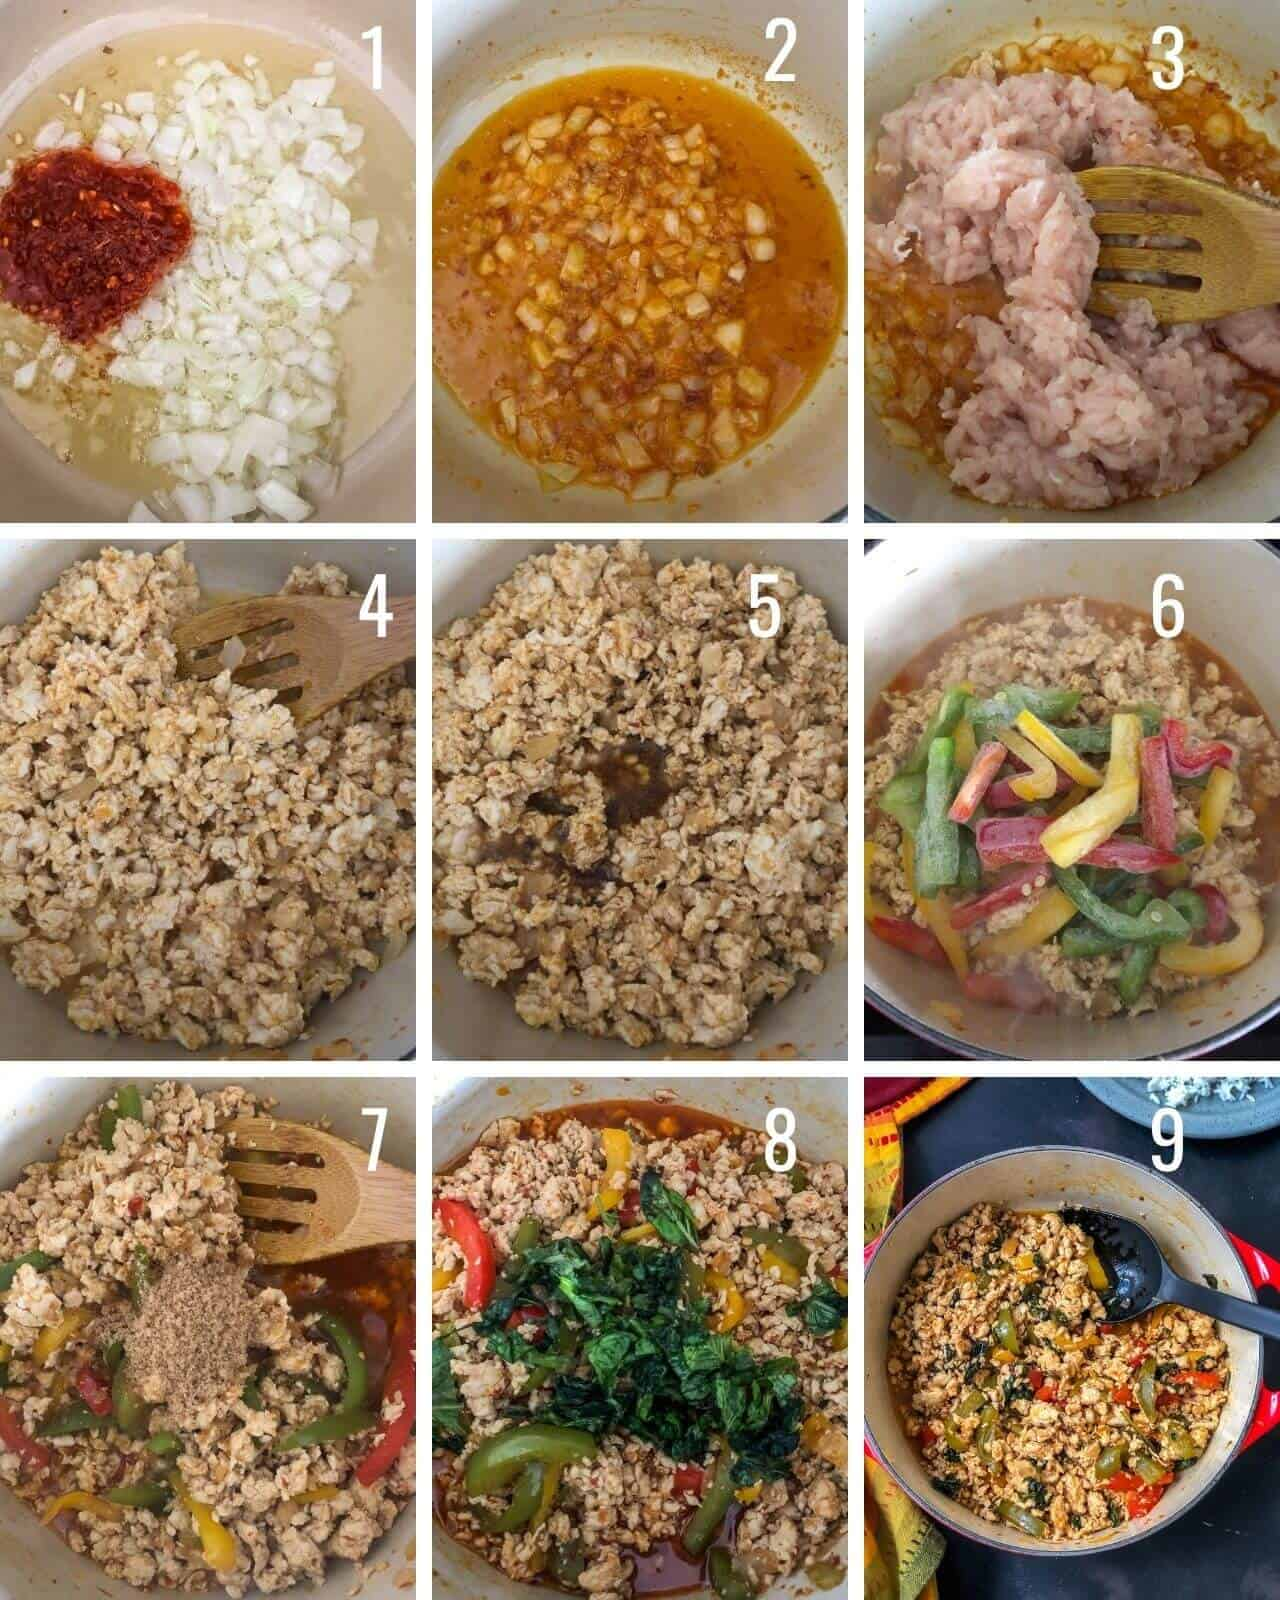 A 9 grid of the different steps to make thai basil chicken.